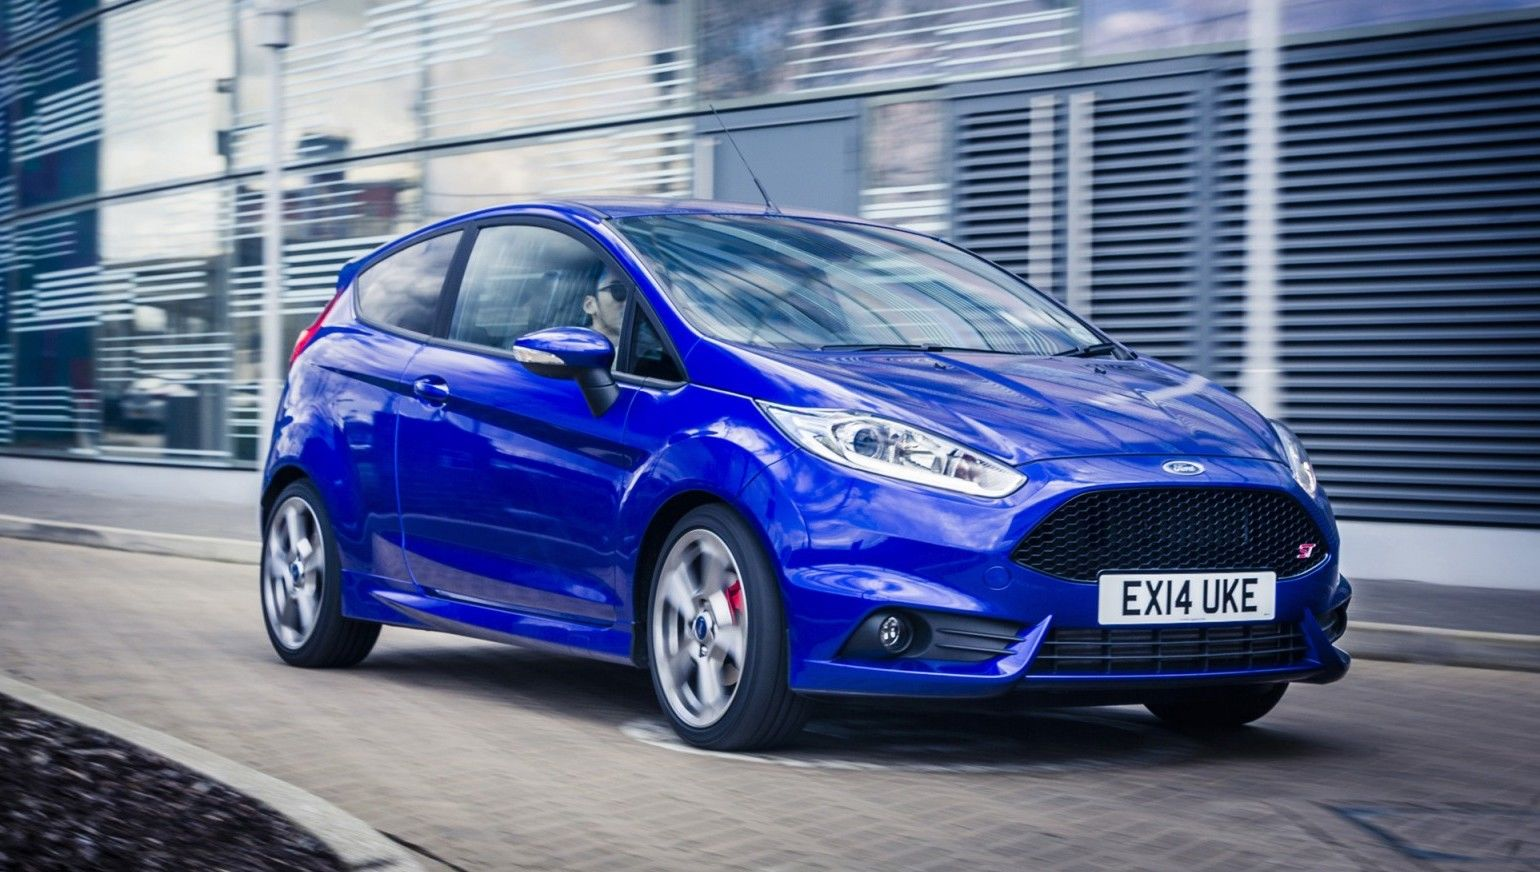 Focus St Vs Gti >> Ford Fiesta ST Review | carwow